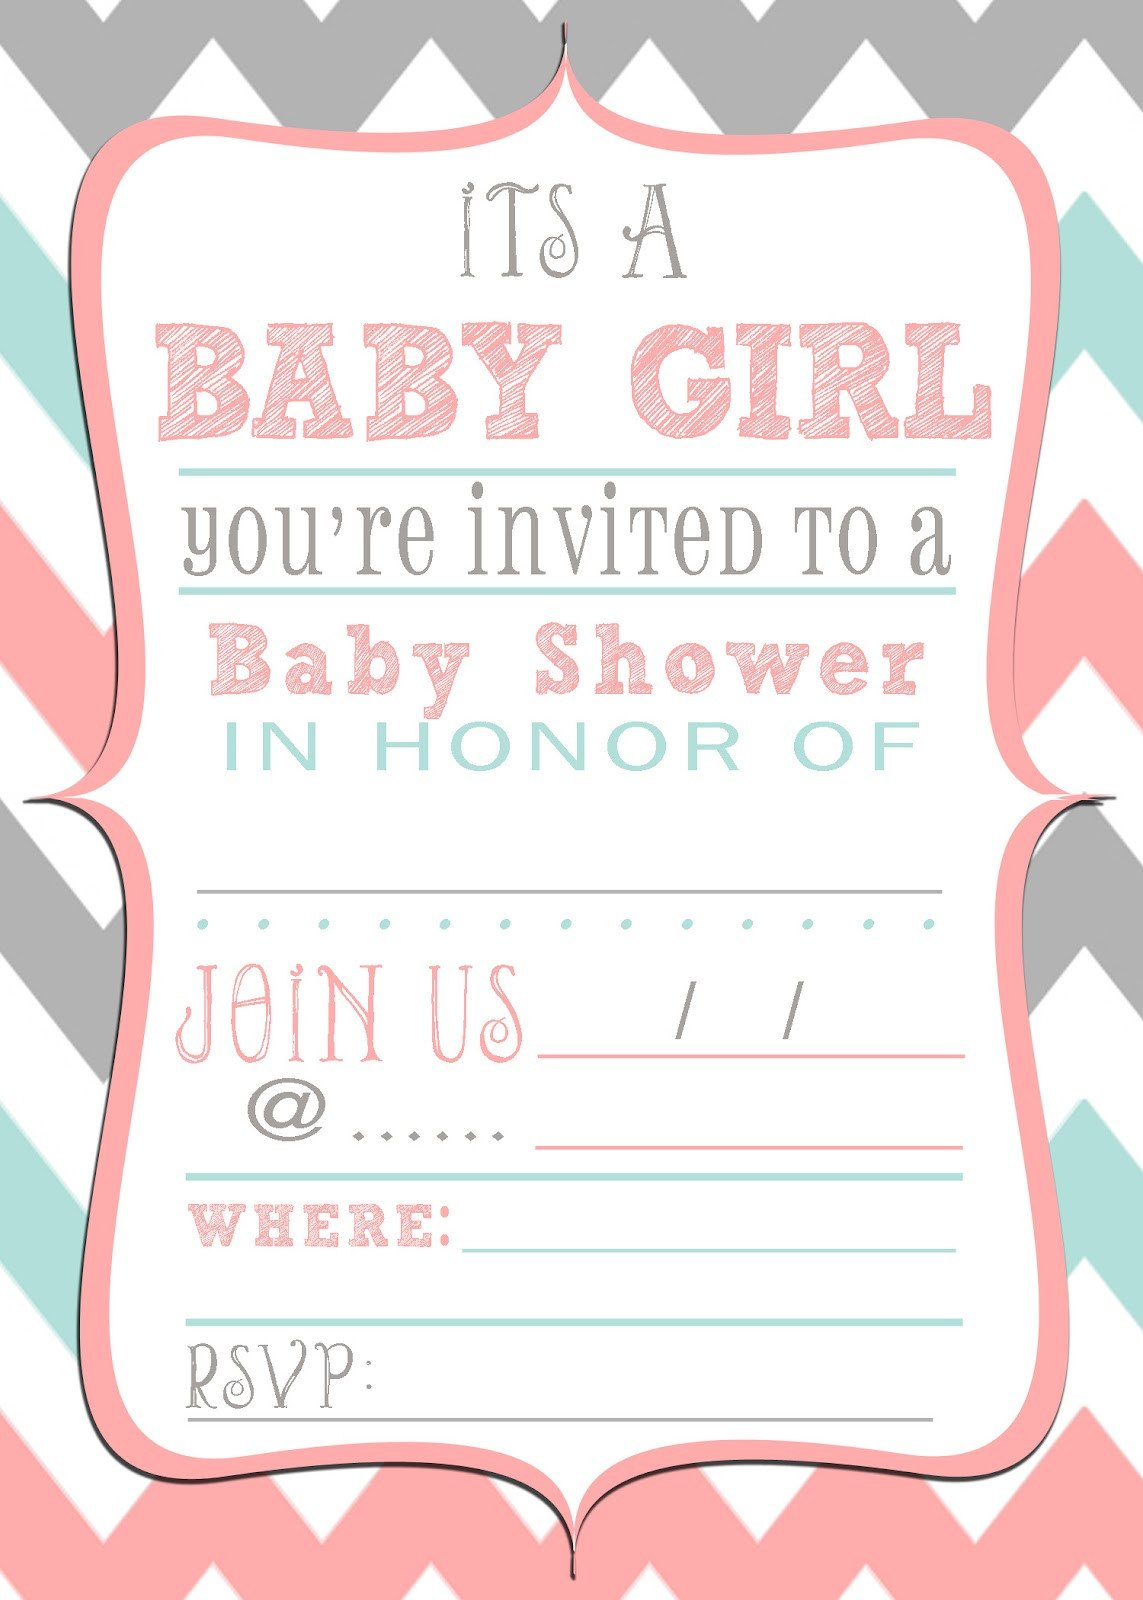 Baby Shower Invitation Template Mrs This and that Baby Shower Banner Free Downloads